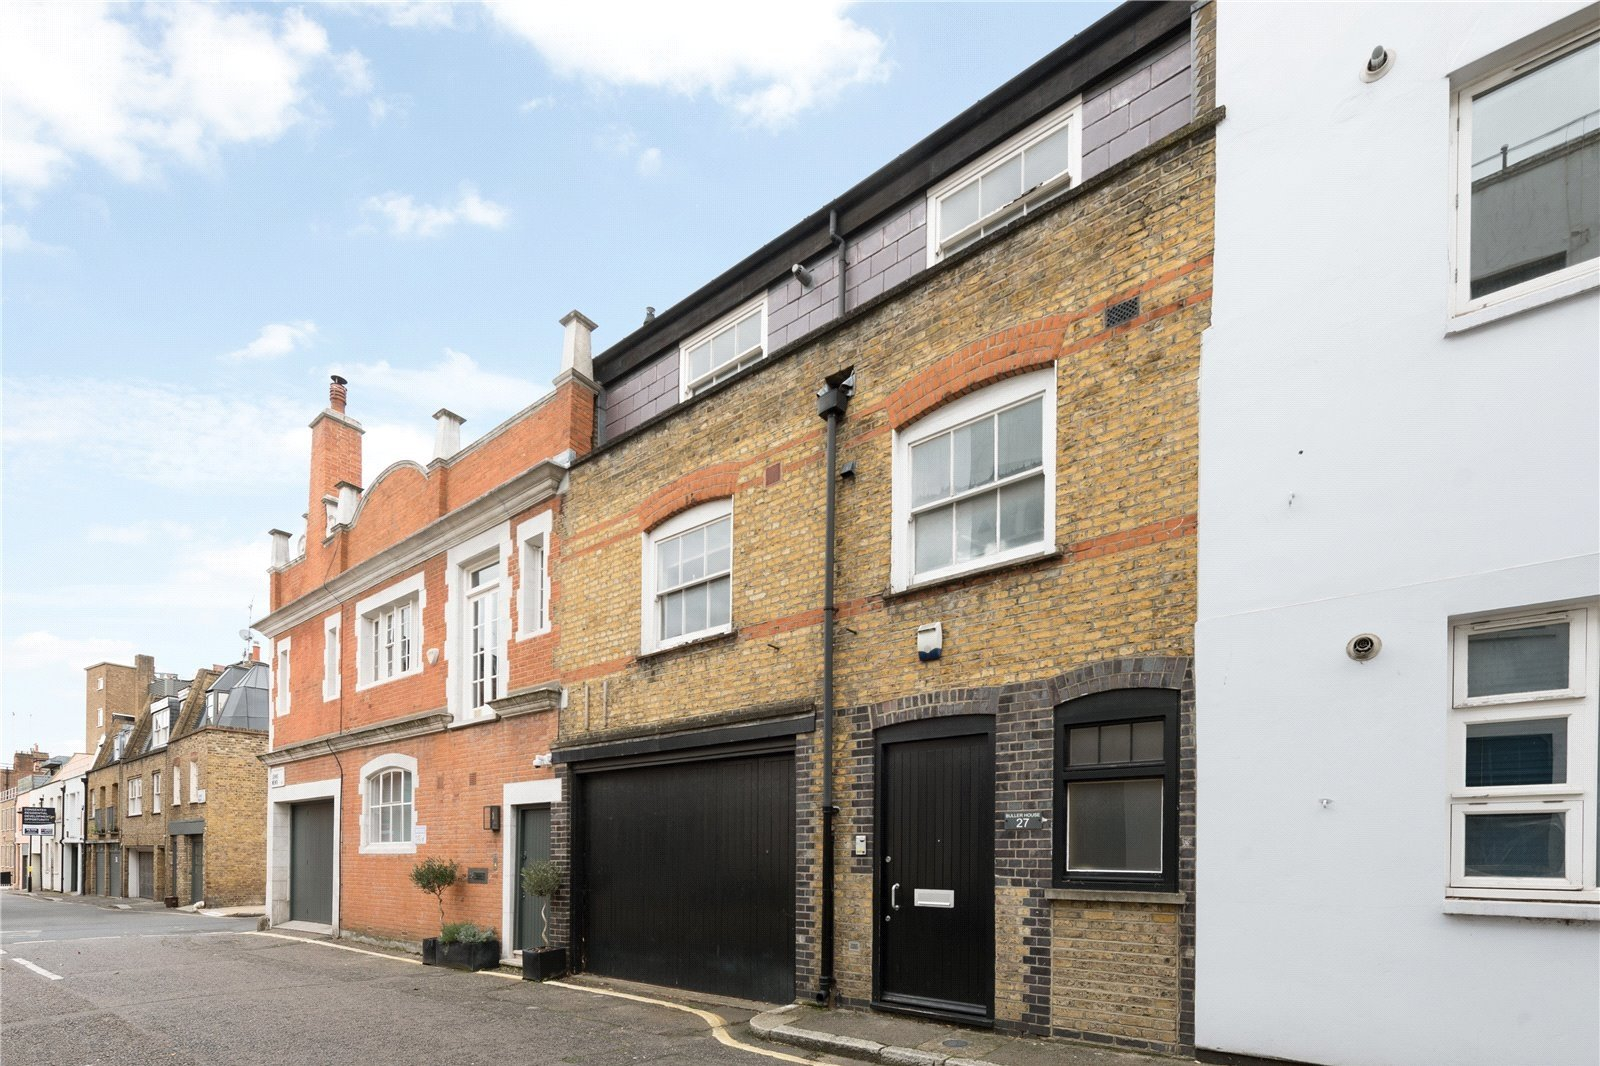 John's Mews, London, WC1N